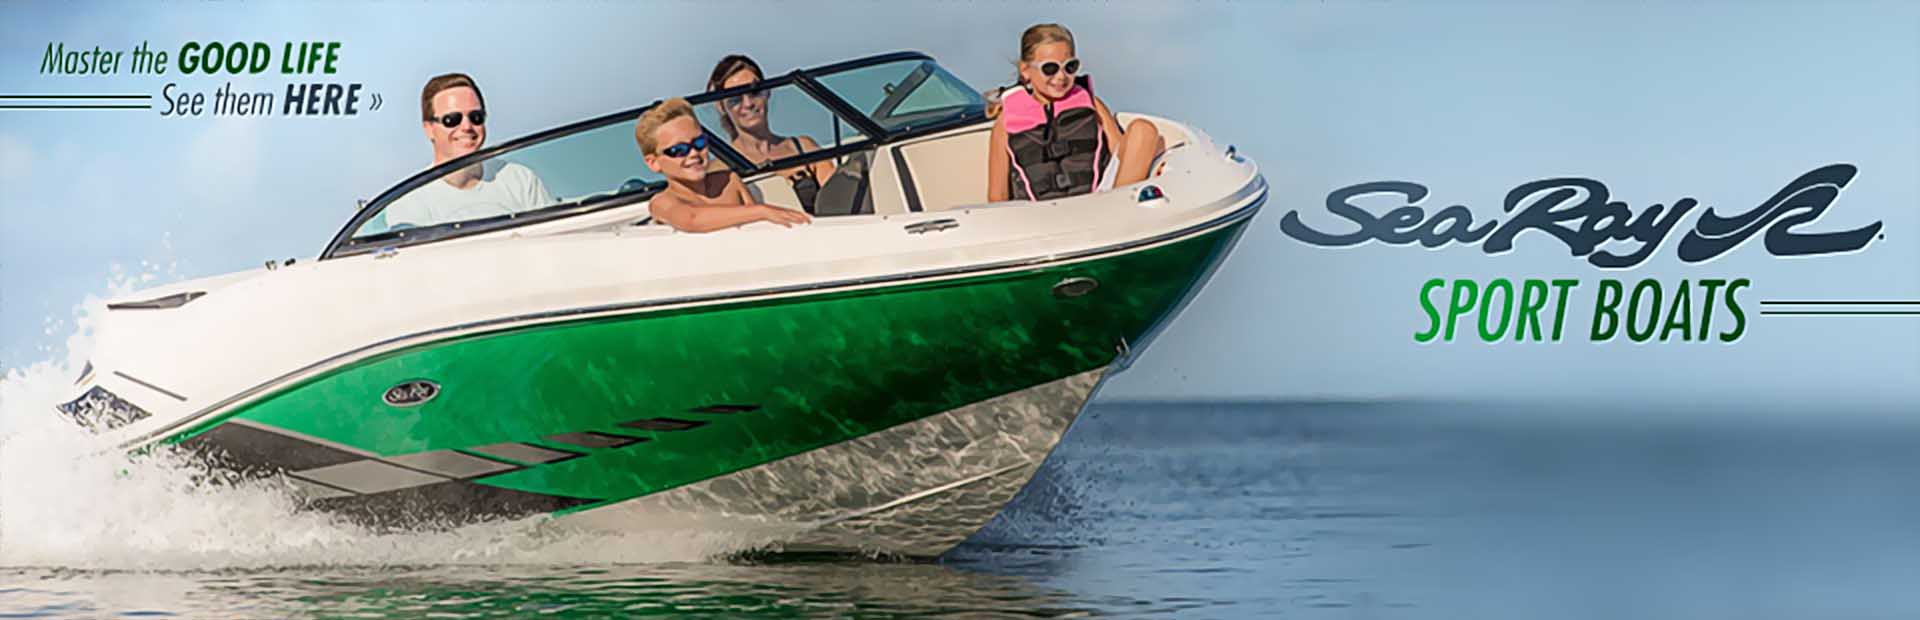 Sea Ray Sport Boats: Click here to view the models.